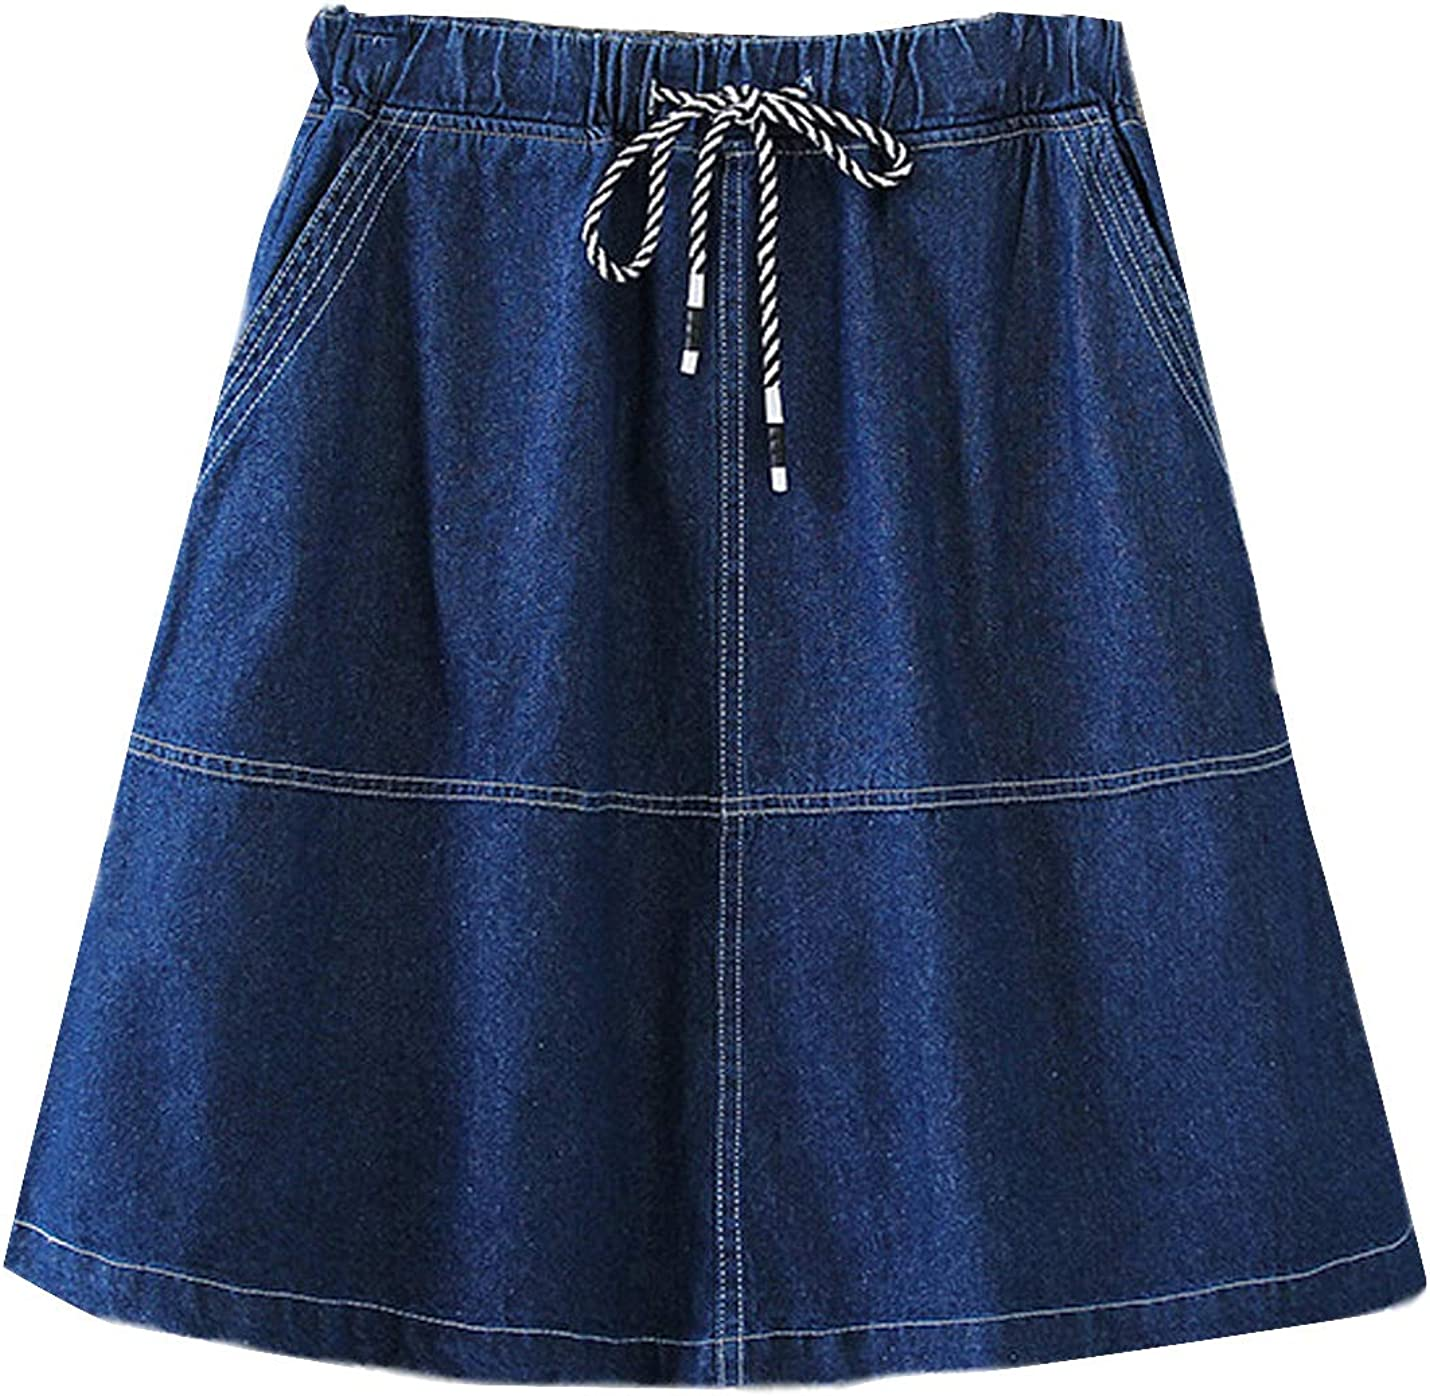 Yimoon Women's Casual Drawstring A-Line Denim Jean Skirt with Pockets